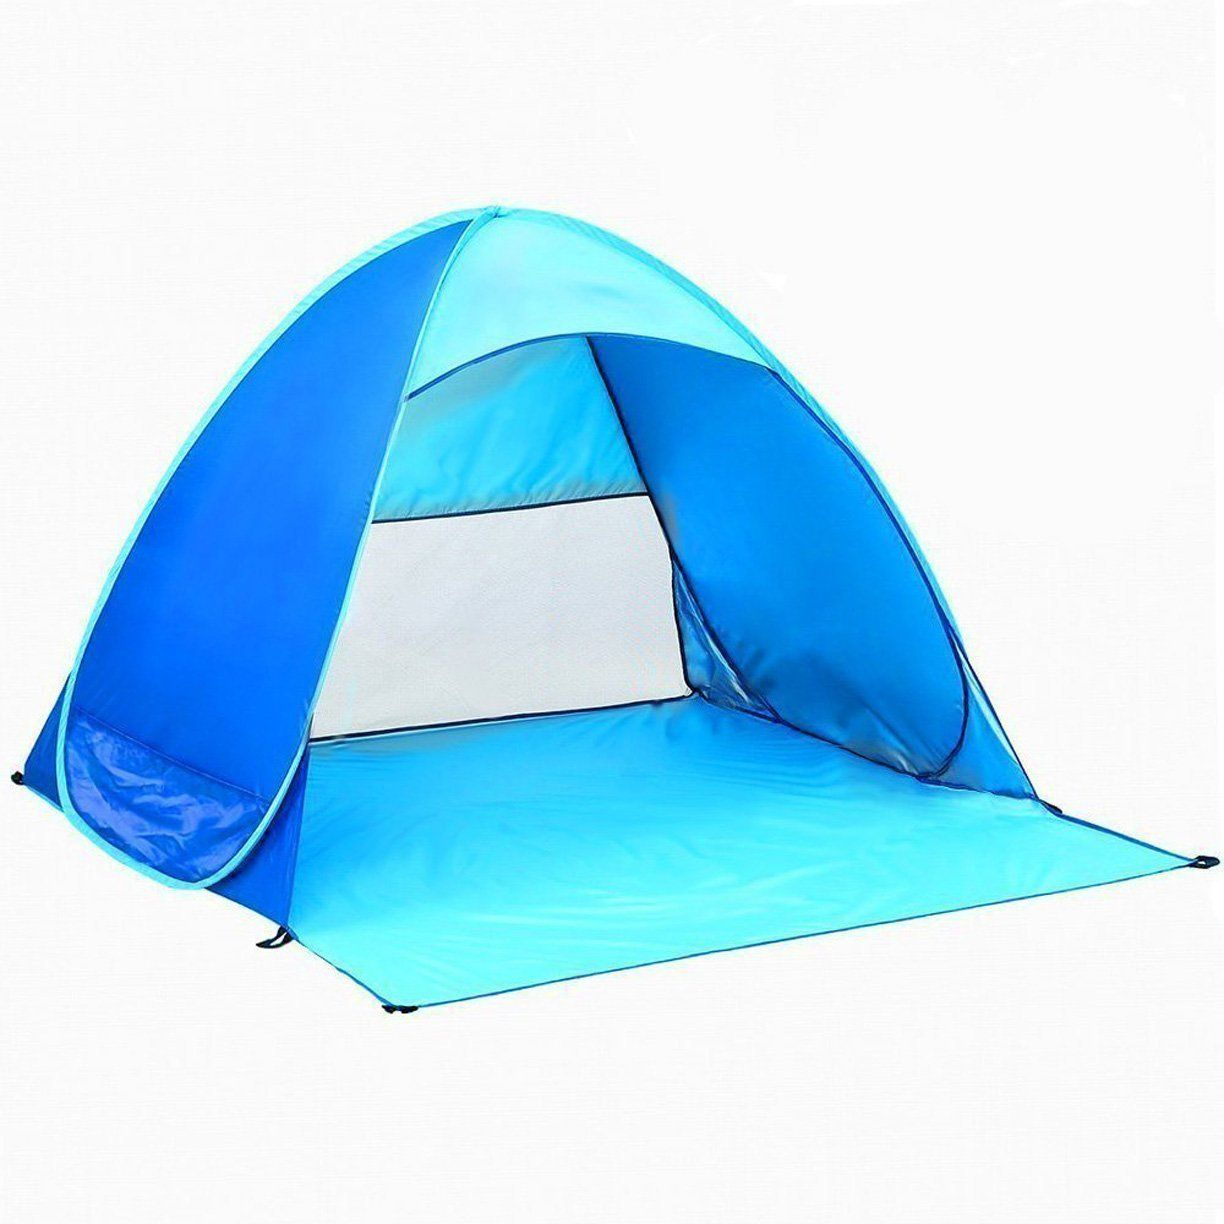 \ Beach Tent  Sunba youth Portable Outdoor Sun Shelter 90% UV Protection  sc 1 st  Pinterest & Beach Tent : Sunba youth Portable Outdoor Sun Shelter 90% UV ...